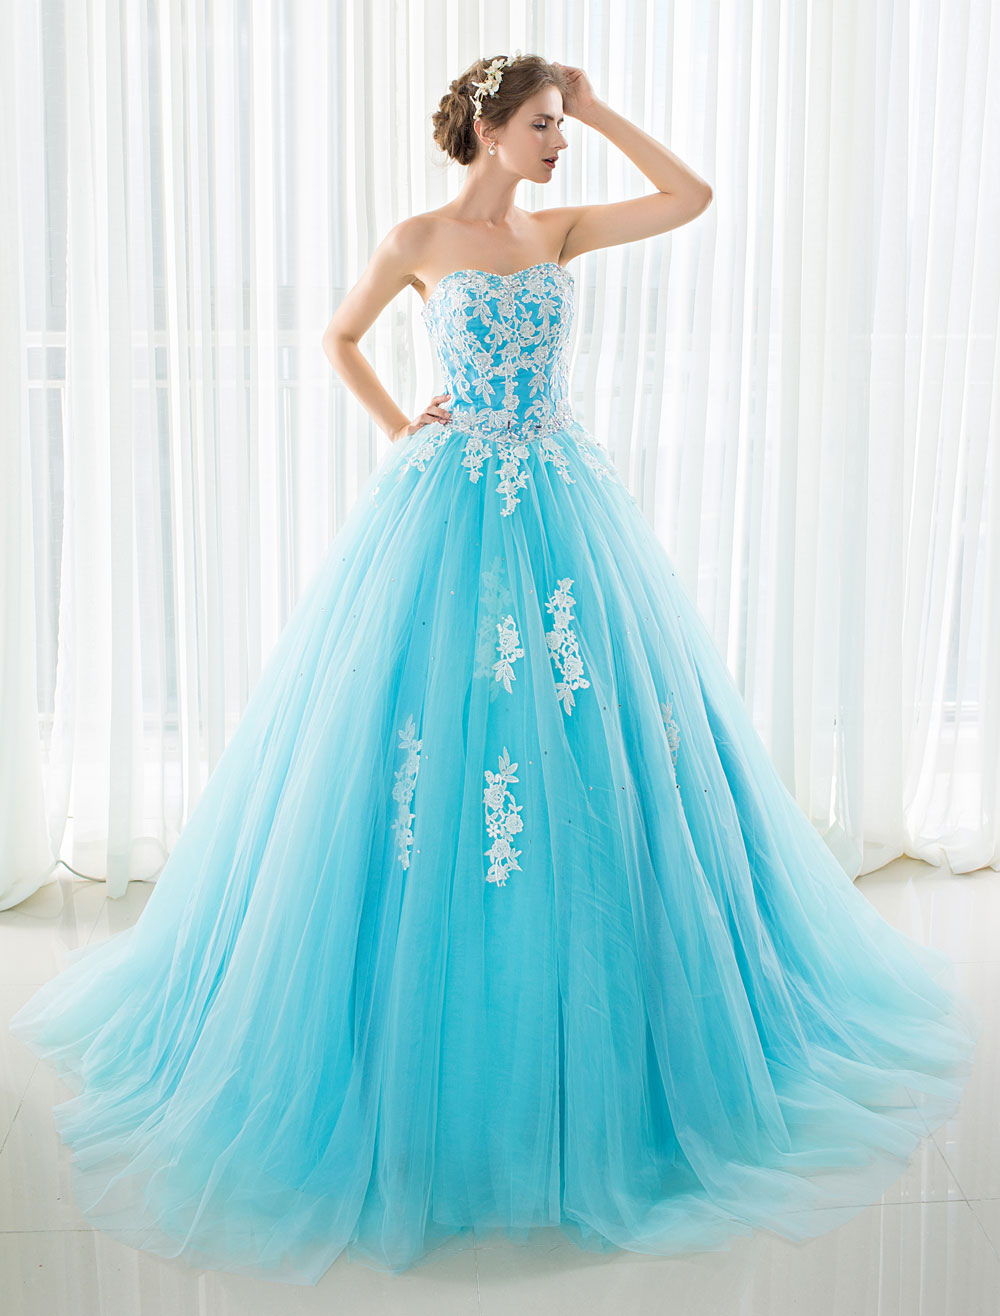 Blue Wedding Dress Lace Applique Tulle Court Train Strapless Sweetheart Lace-up A-line Bridal Gown photo